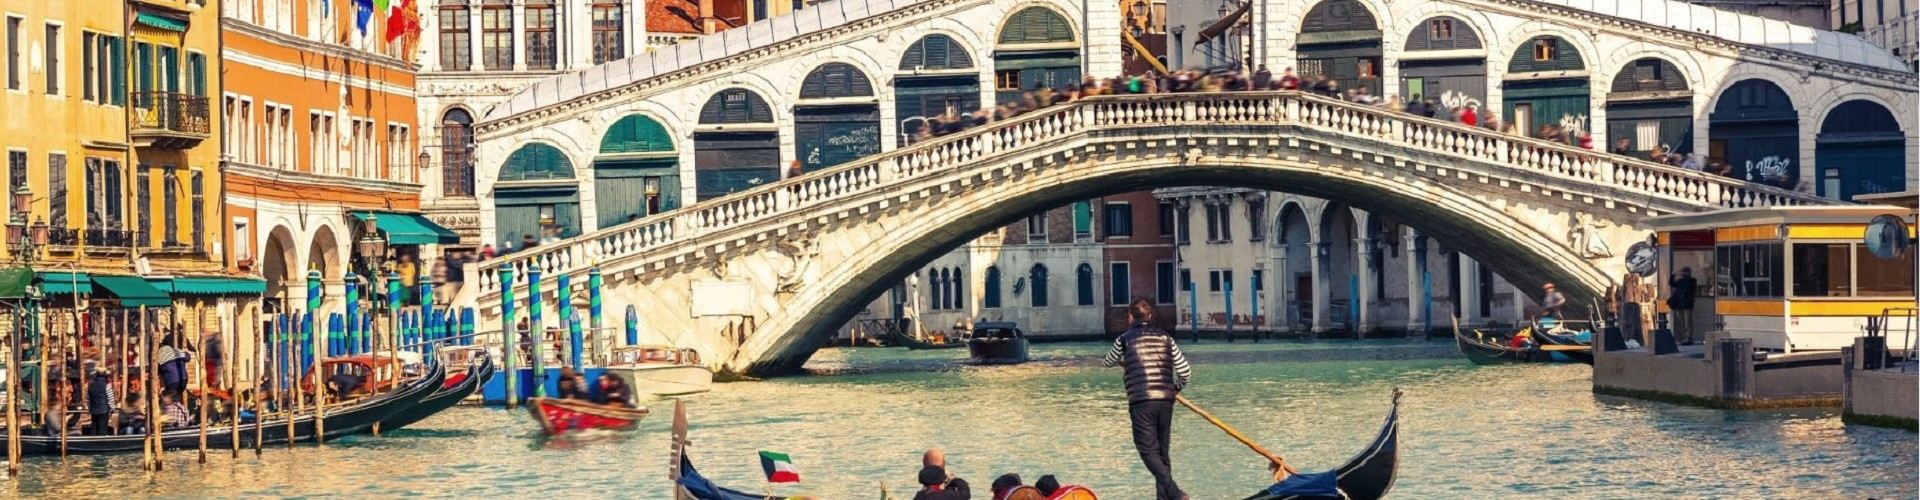 Half Day Private Tour from Venice to Padua highlights | Venice to Florence Private Transfer